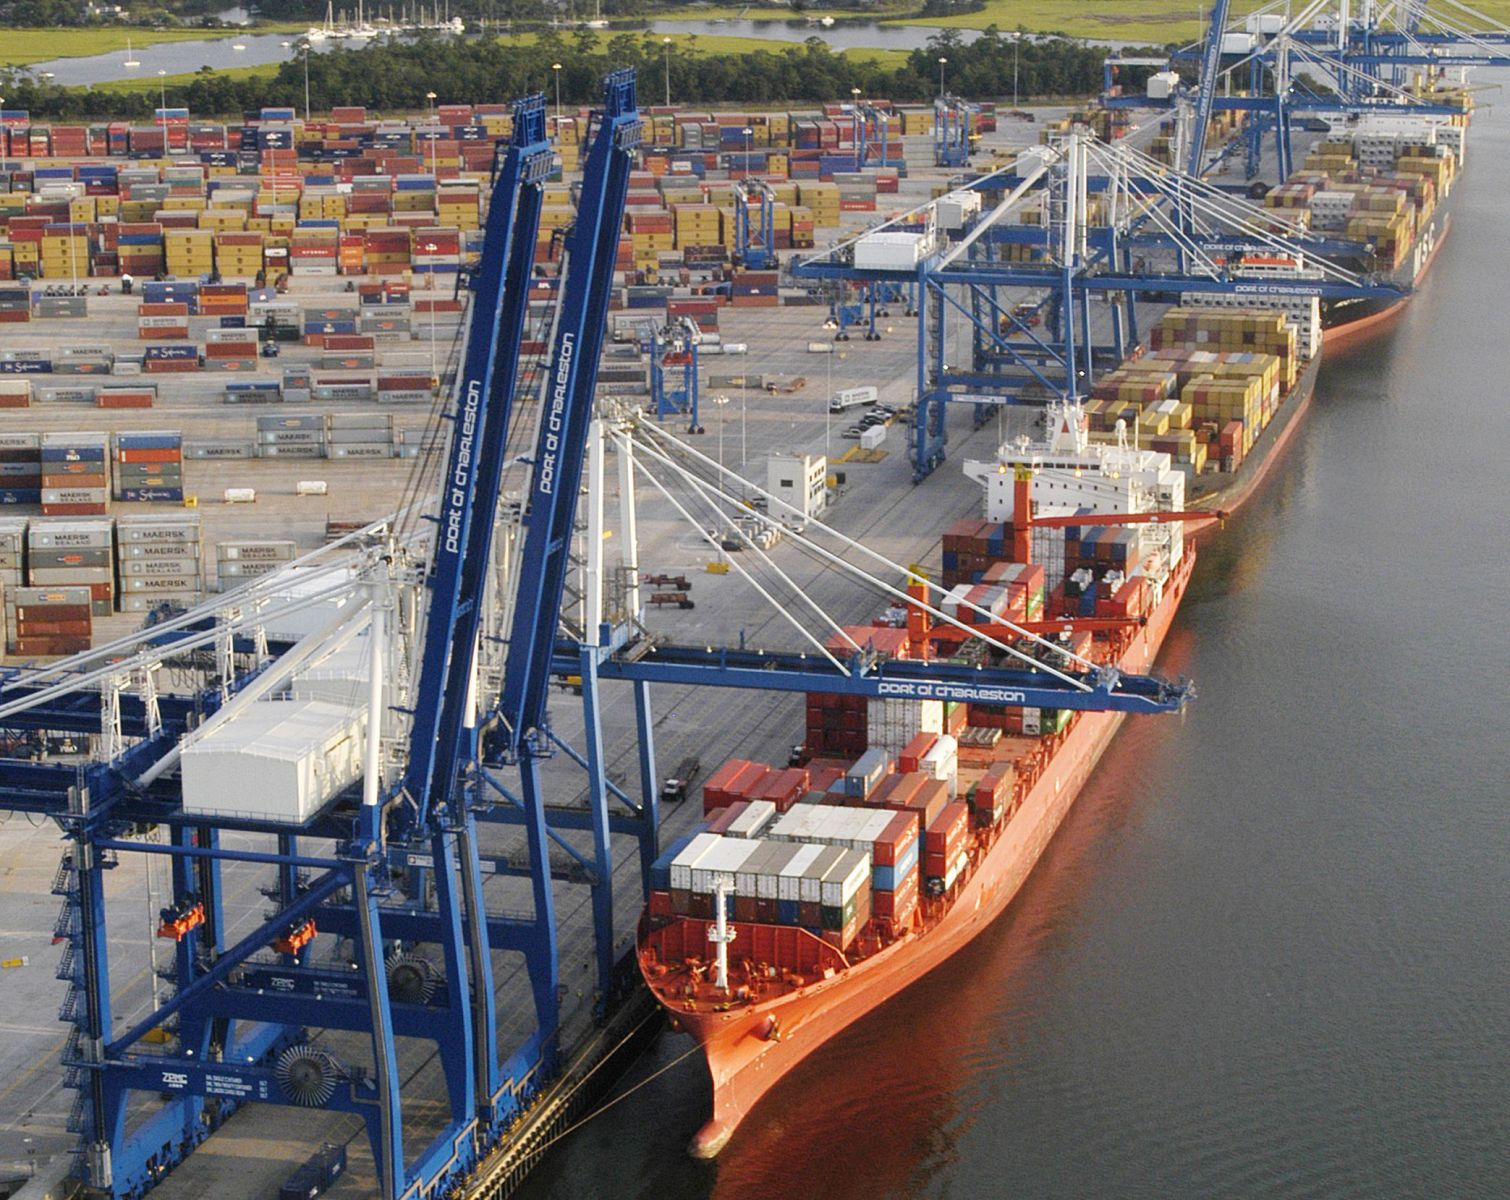 The Port of Charleston set a record for November cargo volume with approximately 99,000 containers coming through the port. (Photo/Provided)